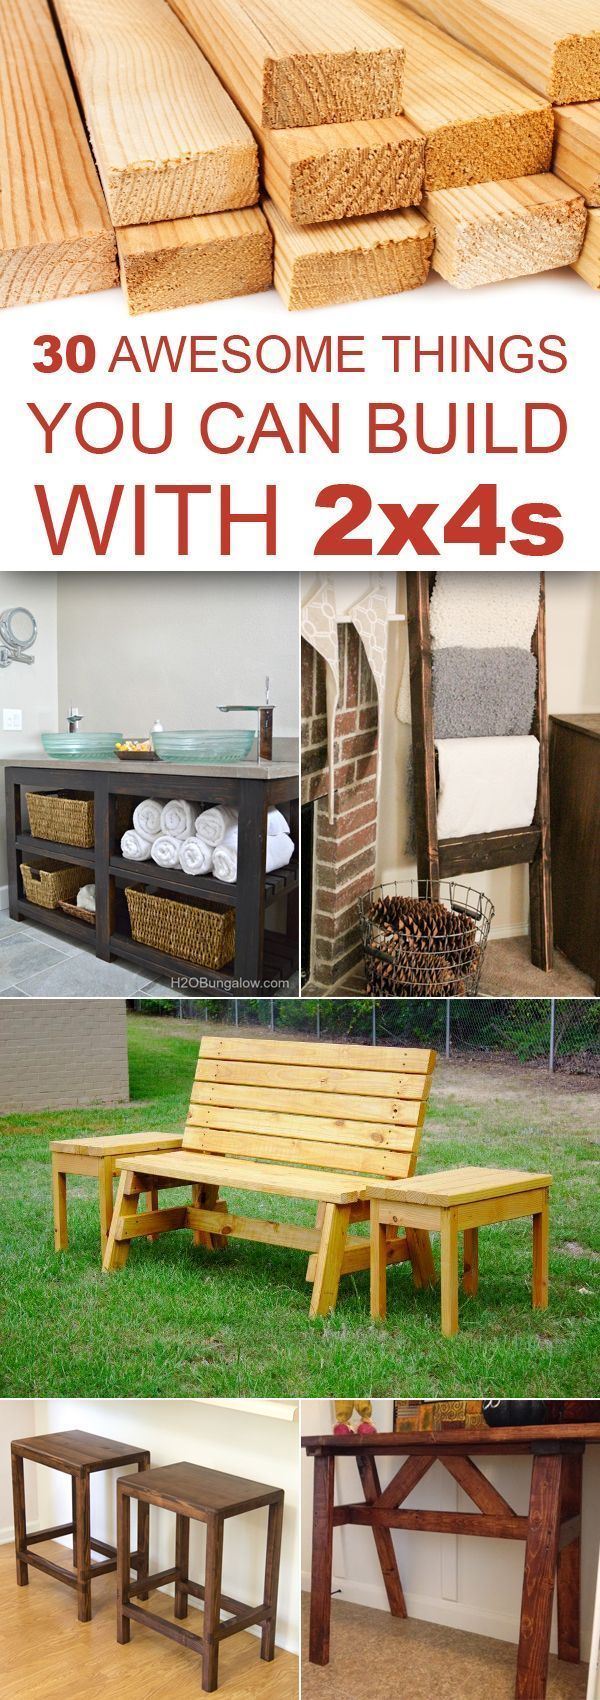 30 Awesome Things You Can Build With 2x4s #simplewoodworking